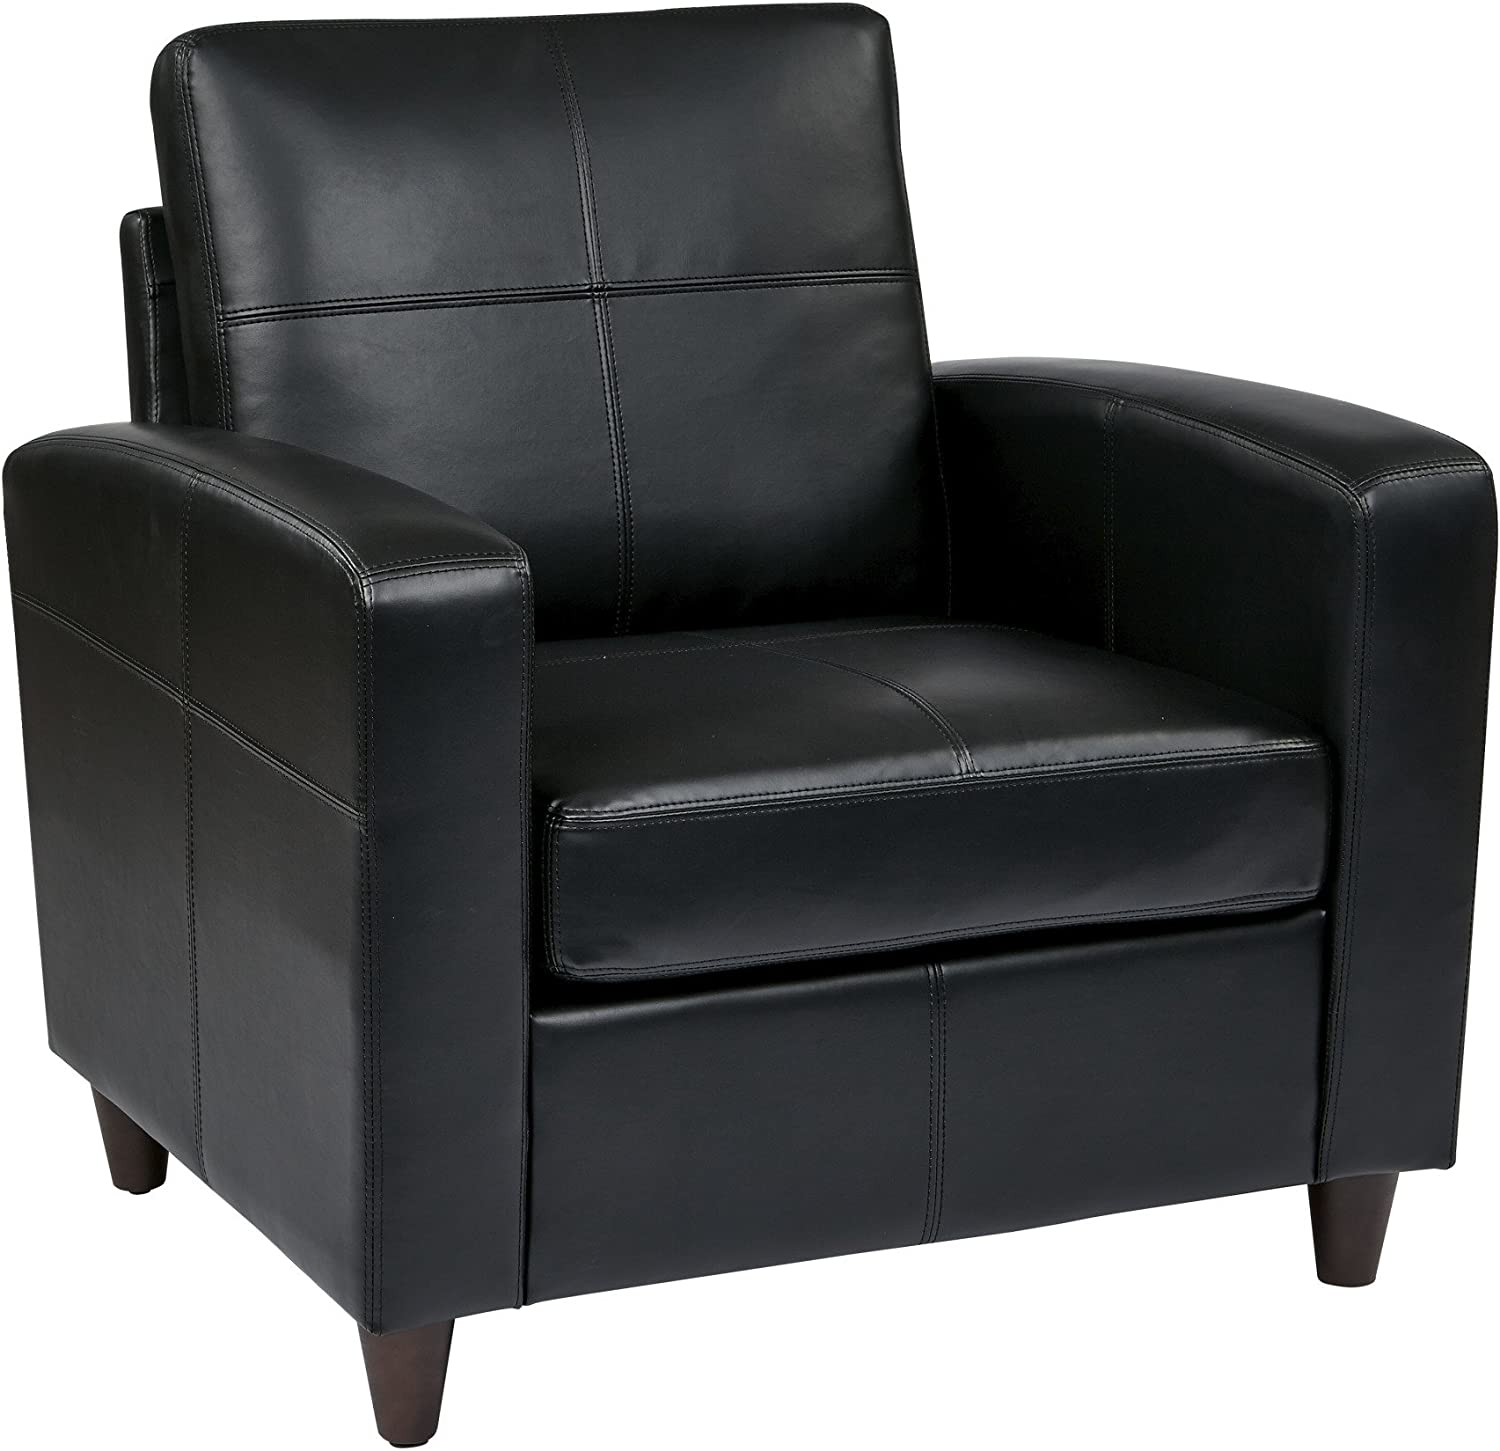 Office Star Breeze Bonded Leather Club Chair with Cherry Finish Legs, Black